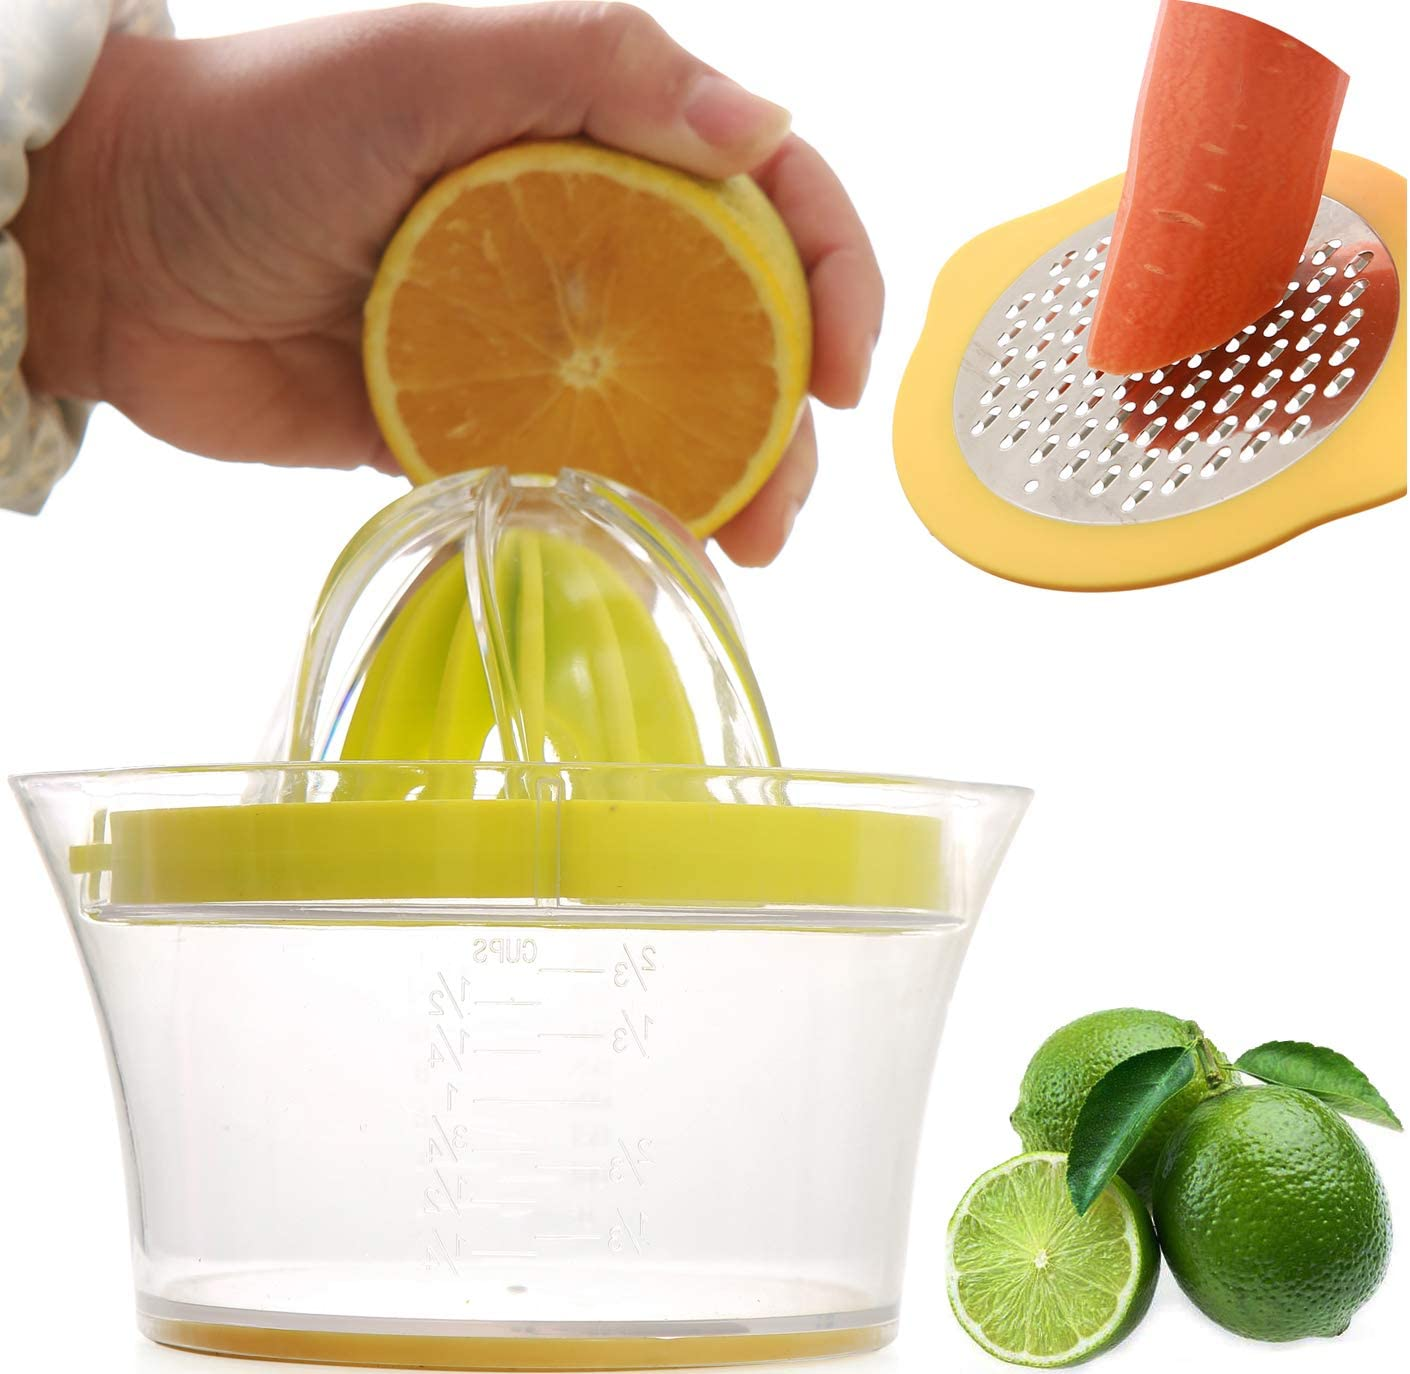 Manual Juicer Lemon Squeezer, 4-in-1 Multi-Function Lime Citrus Orange Squeezer, Hand Press Fruit Juicer with Non-Slip 12 ounce Measuring Cup, Manual Orange Juicer Citrus Press, Egg Yolk Separtor